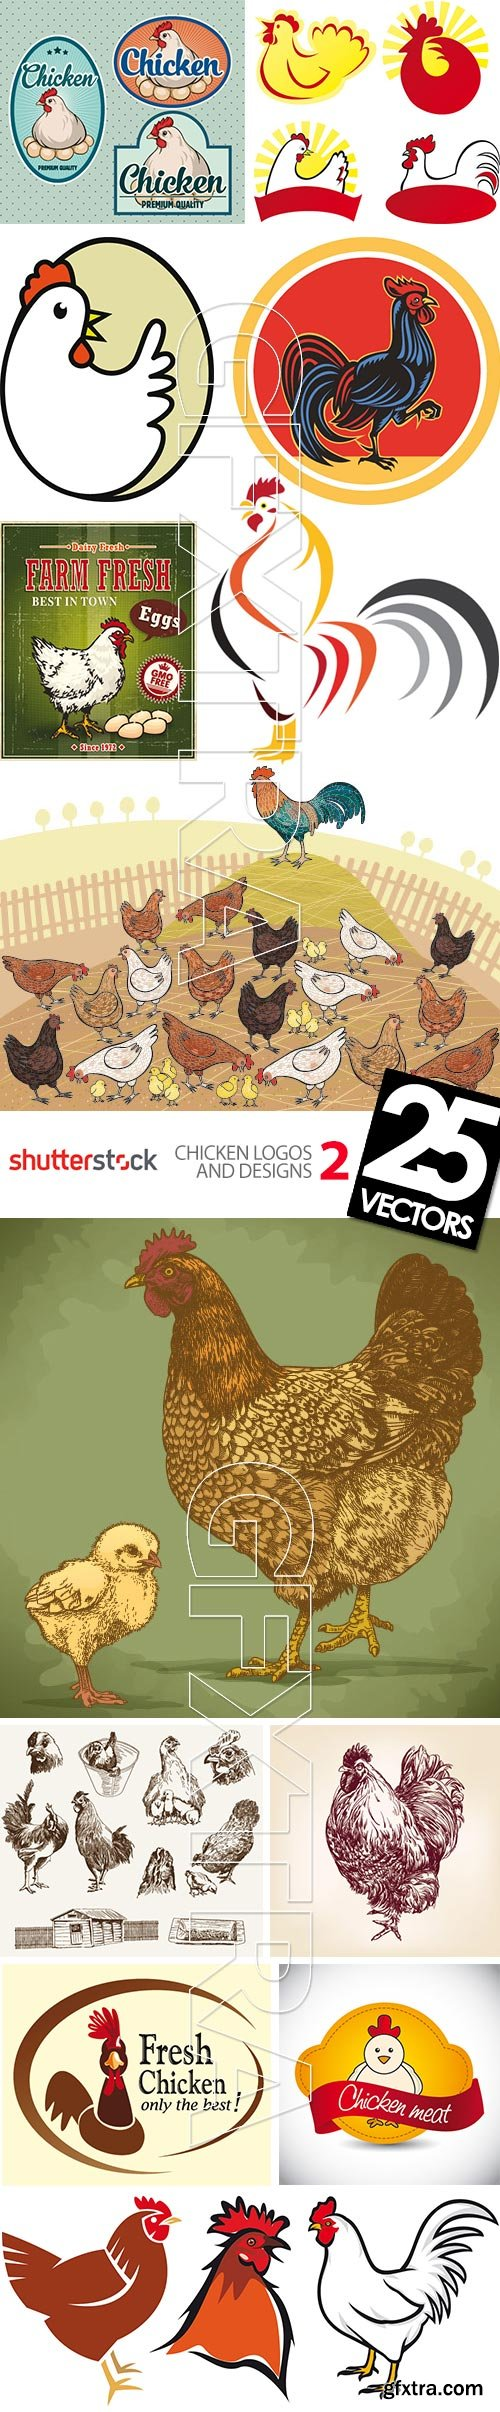 Chicken Logos & Designs 2, 25xEPS